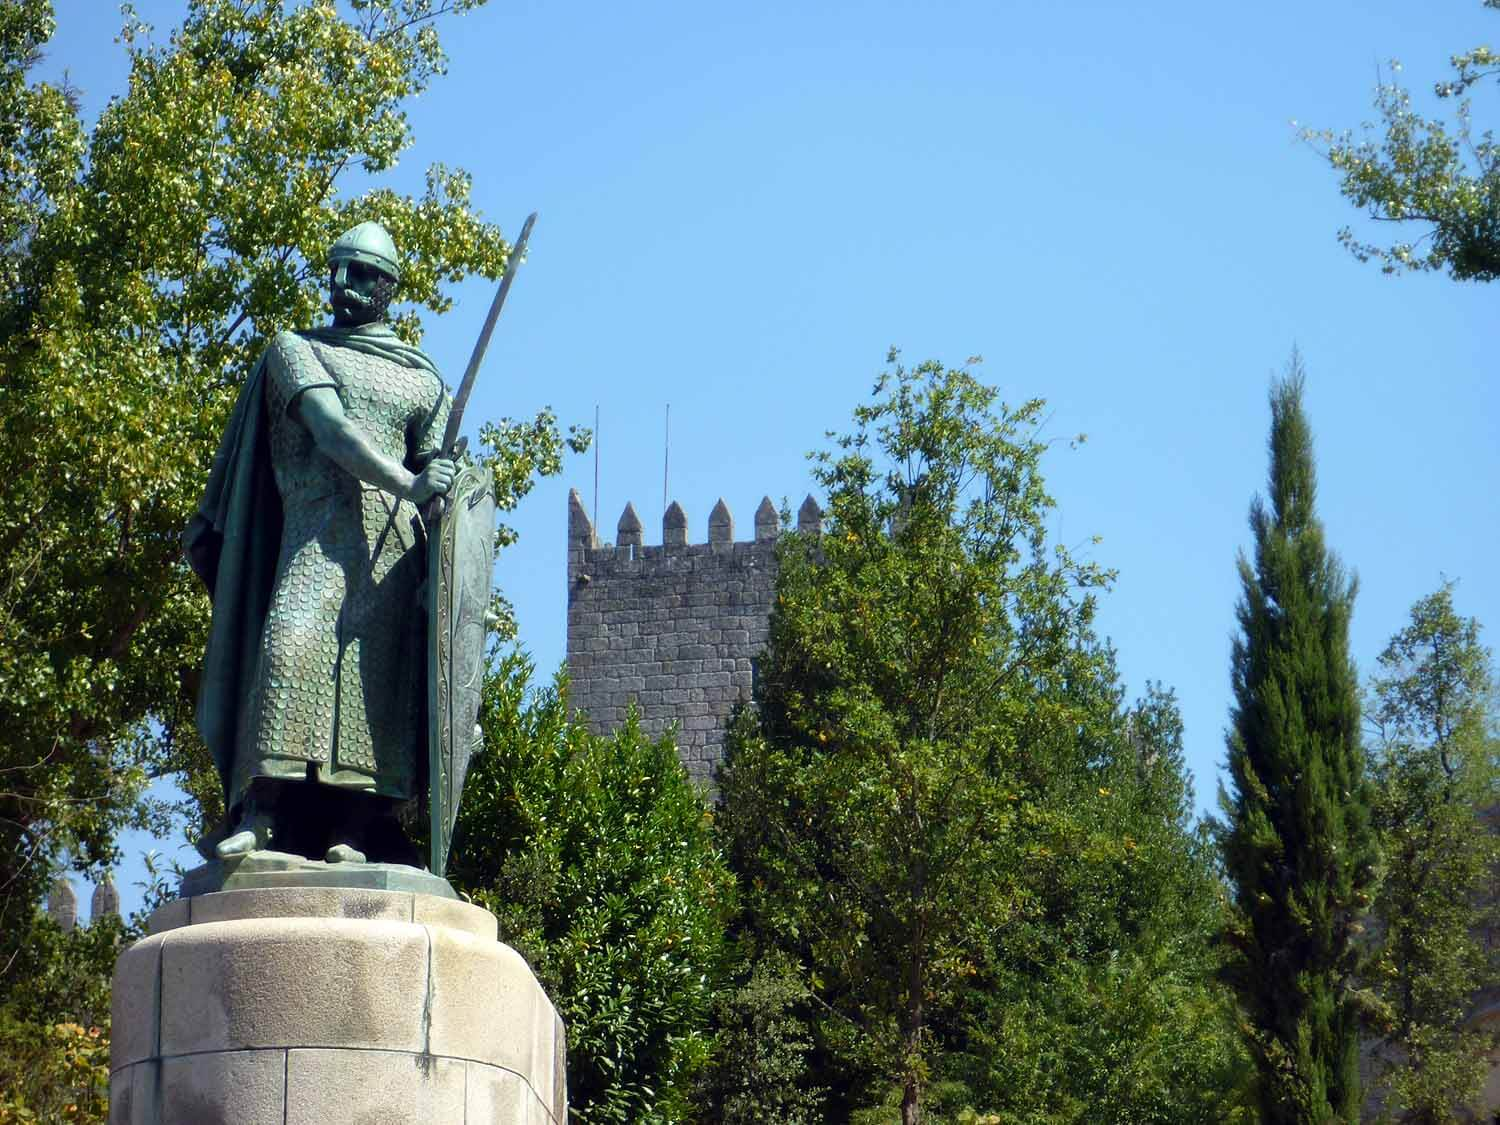 portugal-guimaraes-don-pedro-castle.JPG